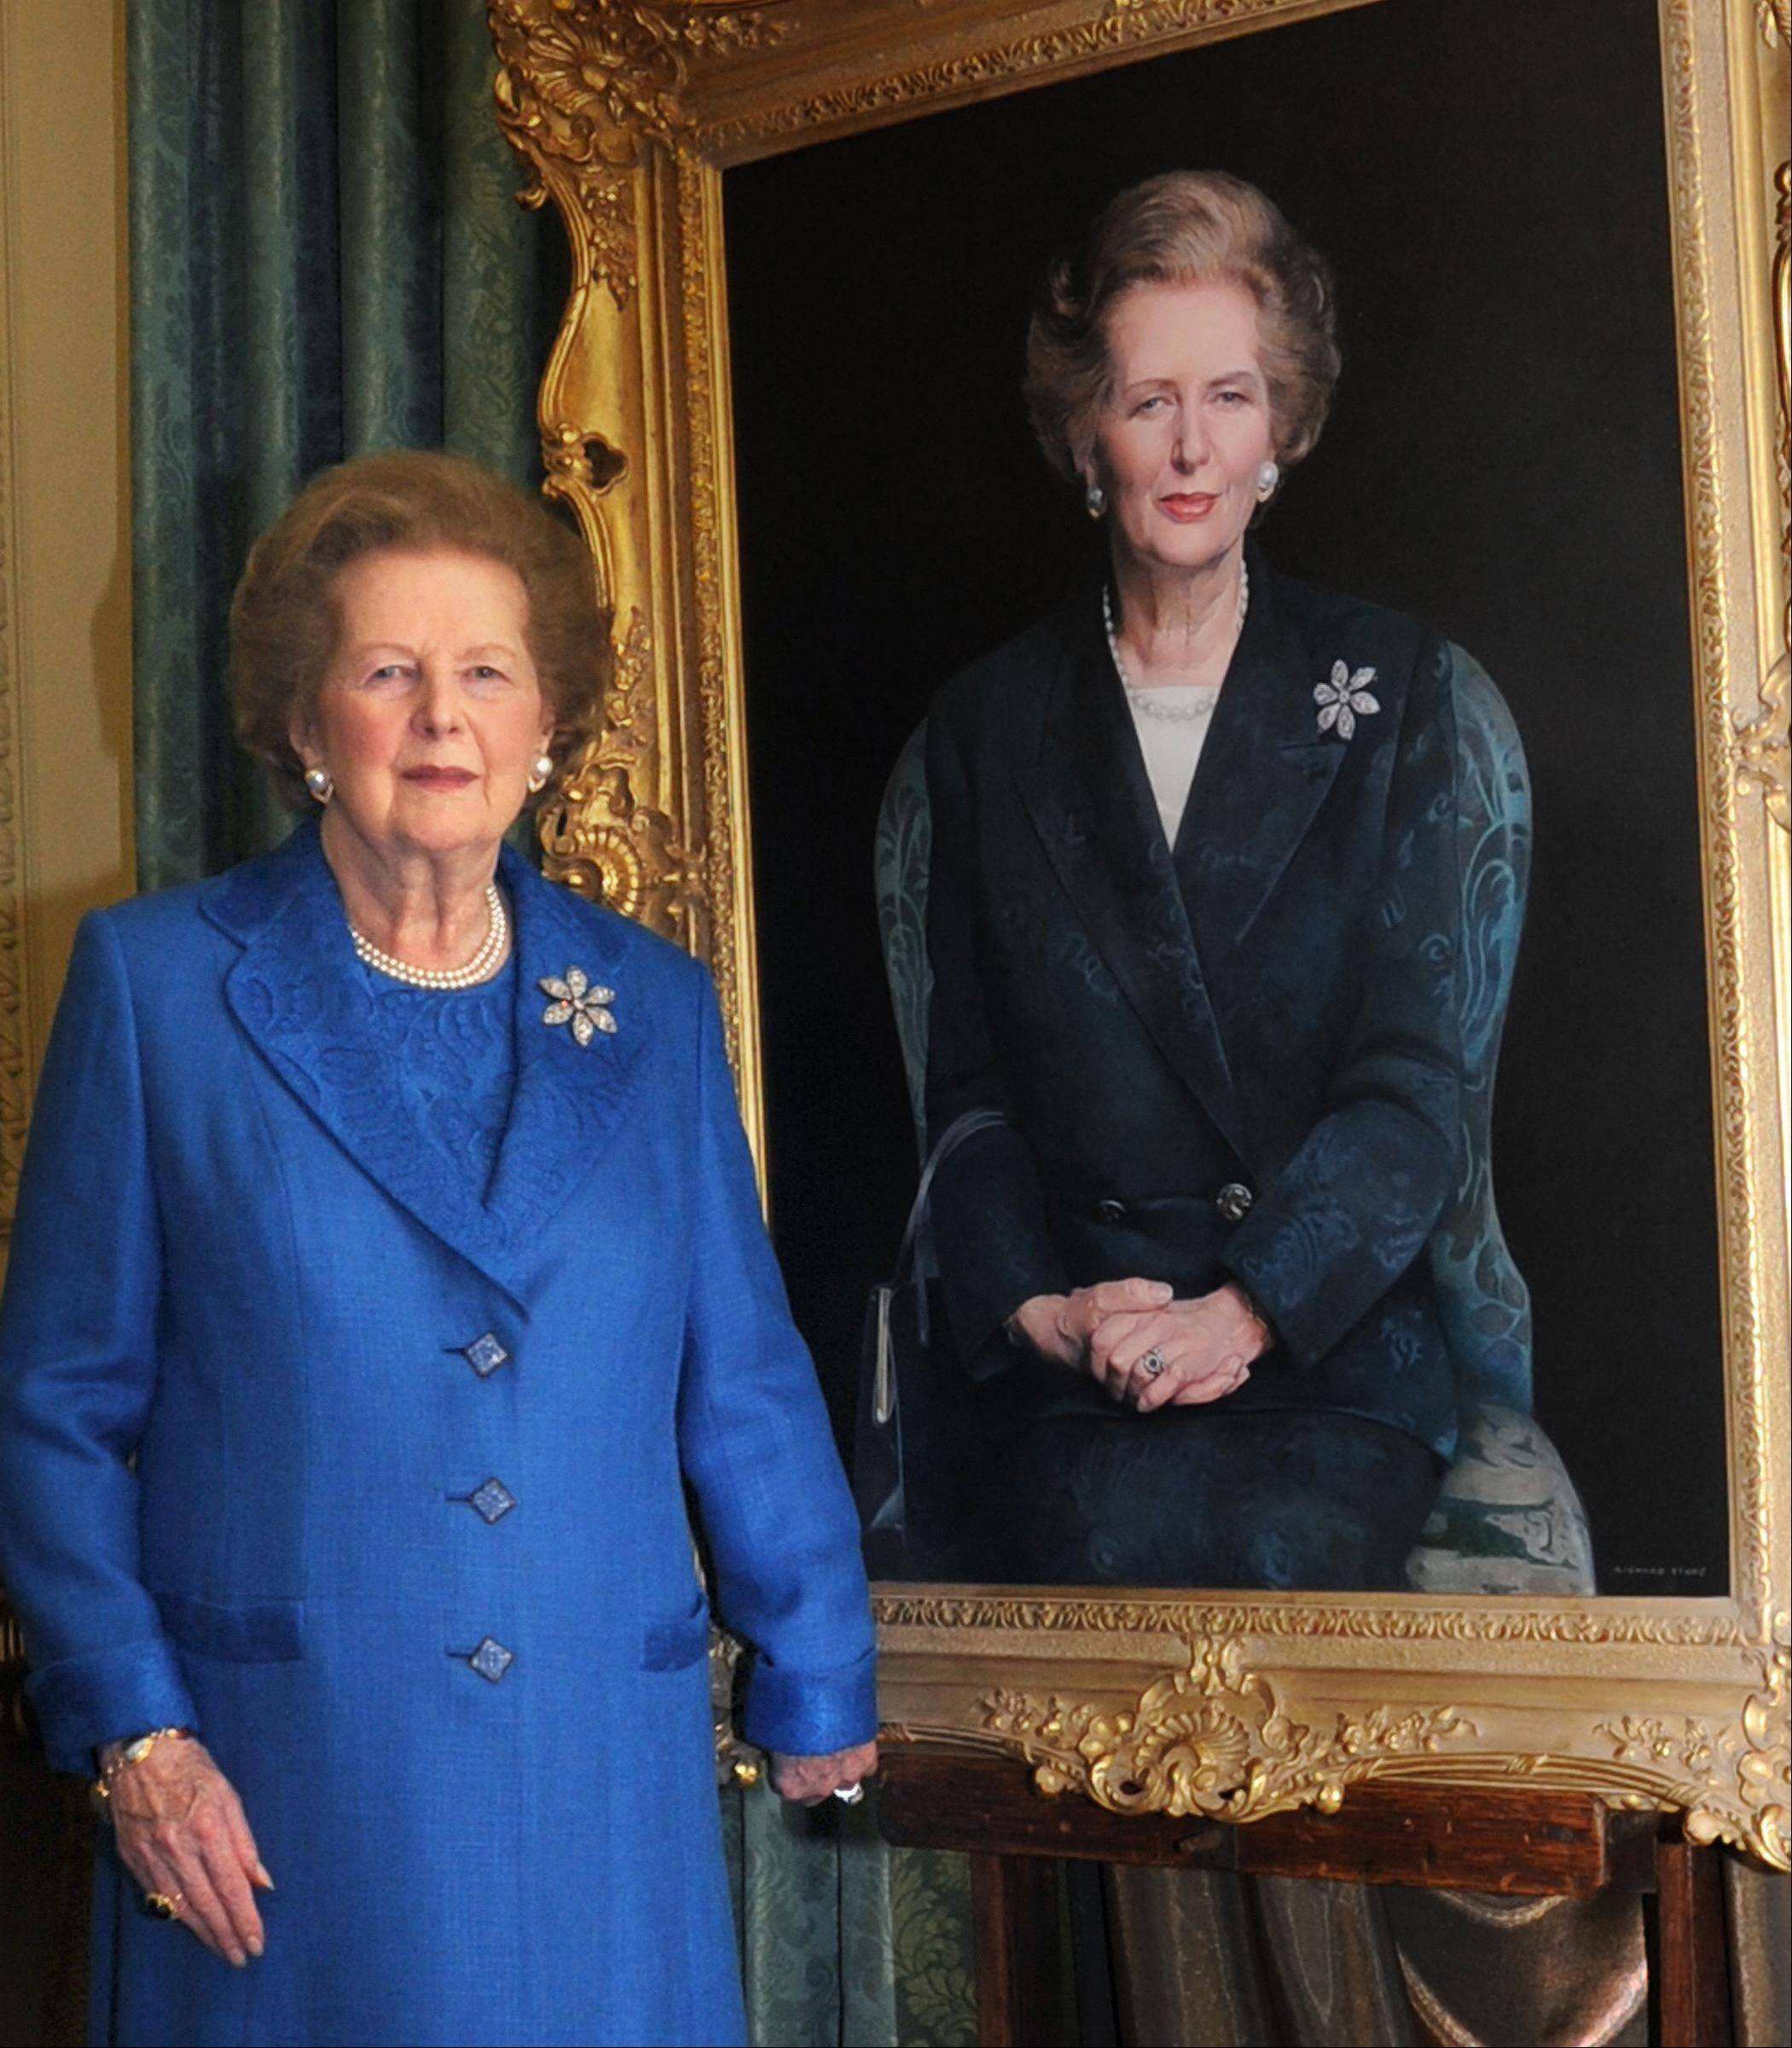 In a file handout image provided by 10 Downing Street, on Monday Nov. 23, 2009, former Prime Minister Margaret Thatcher, stands next to her portrait painted by artist Richard Stone, at 10 Downing Street in London. Thatchers former spokesman, Tim Bell, said that the former British Prime Minister Margaret Thatcher died Monday morning, April 8, 2013, of a stroke. She was 87.